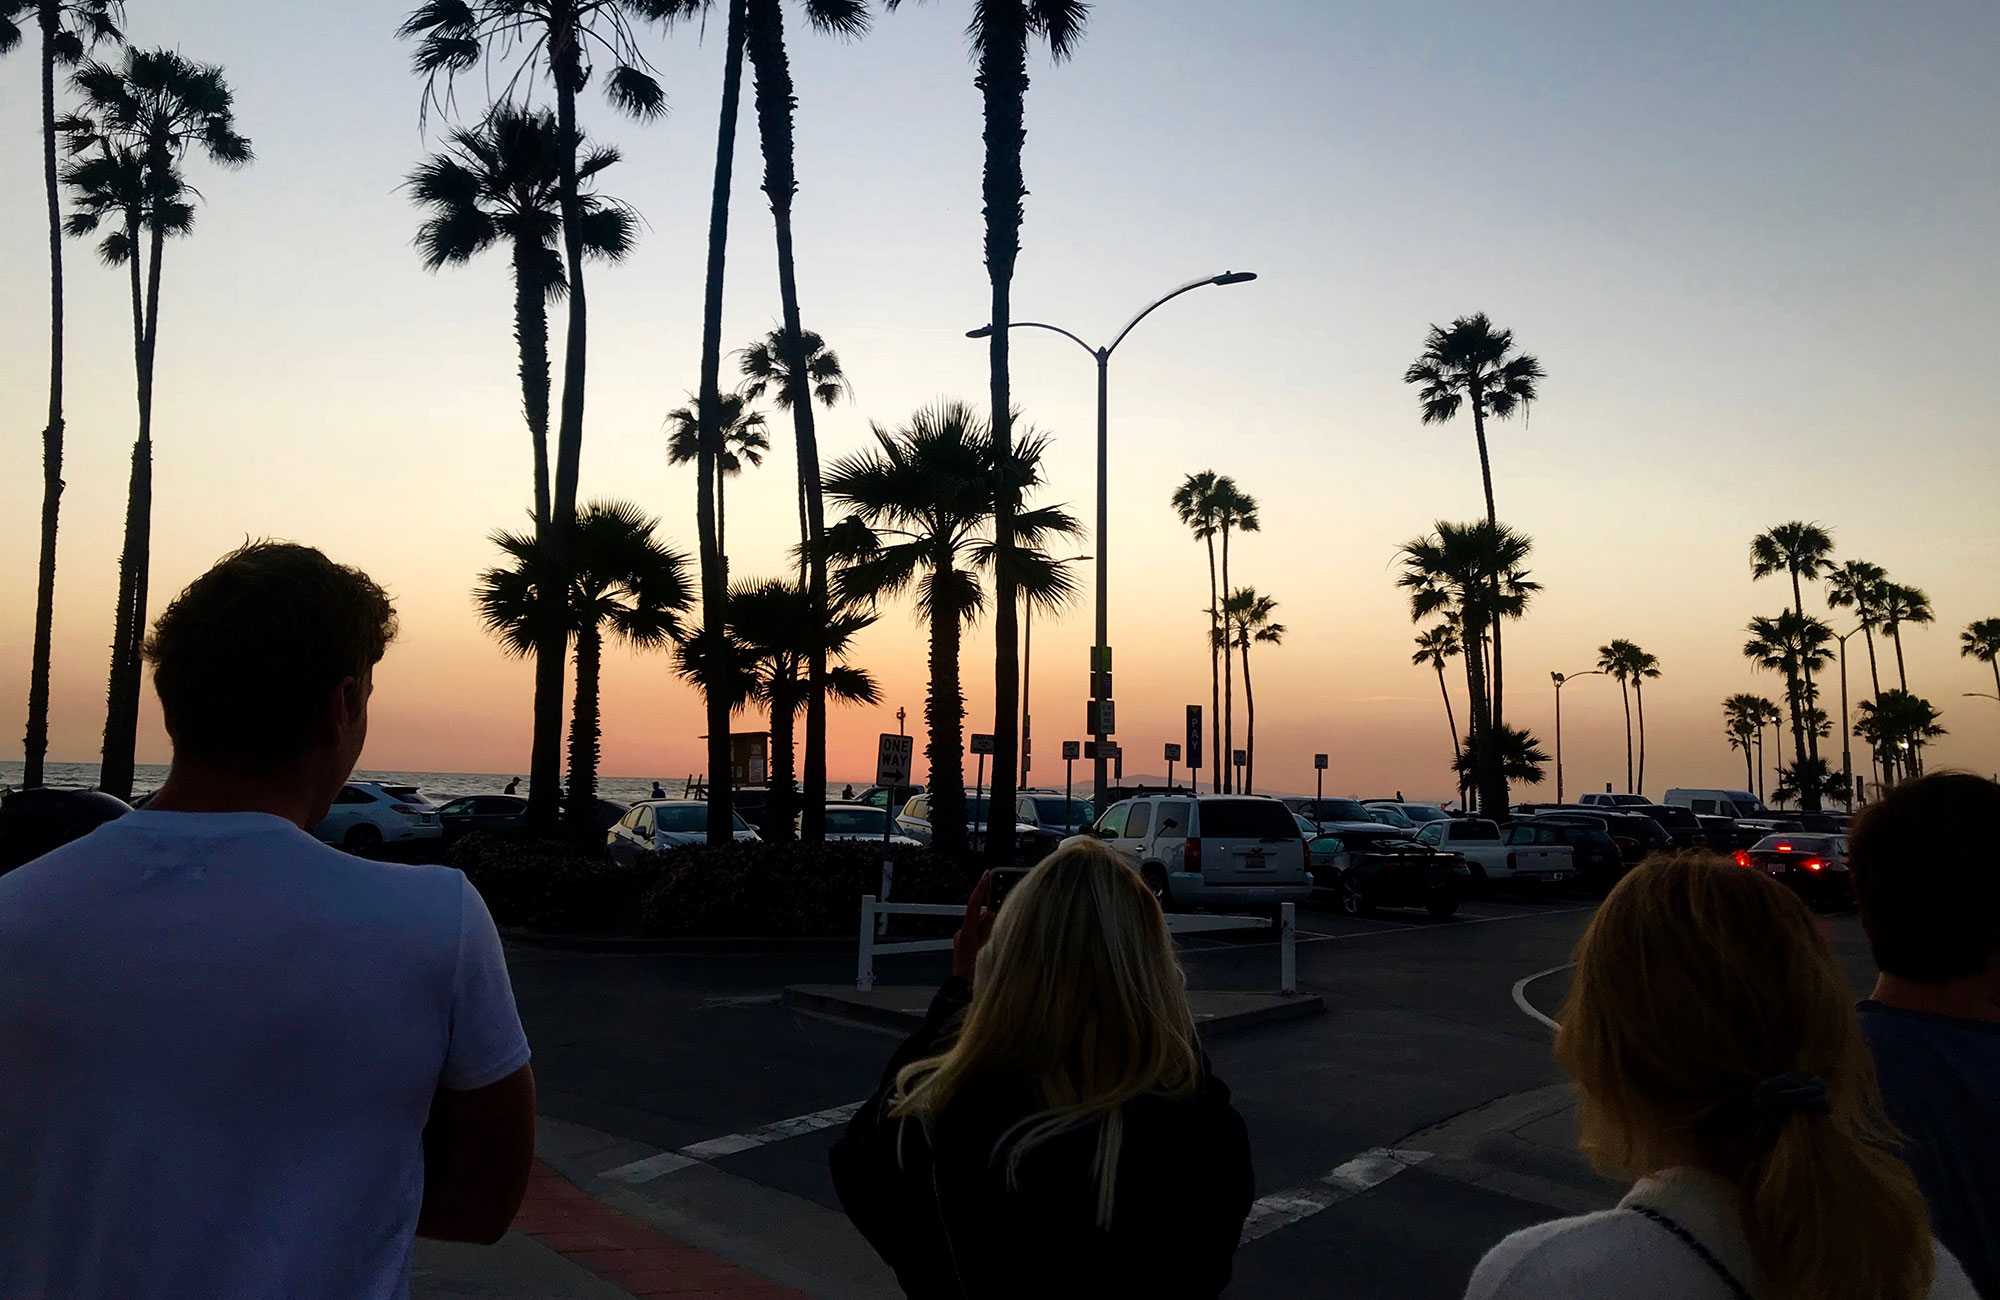 sunset at santa barbara city college